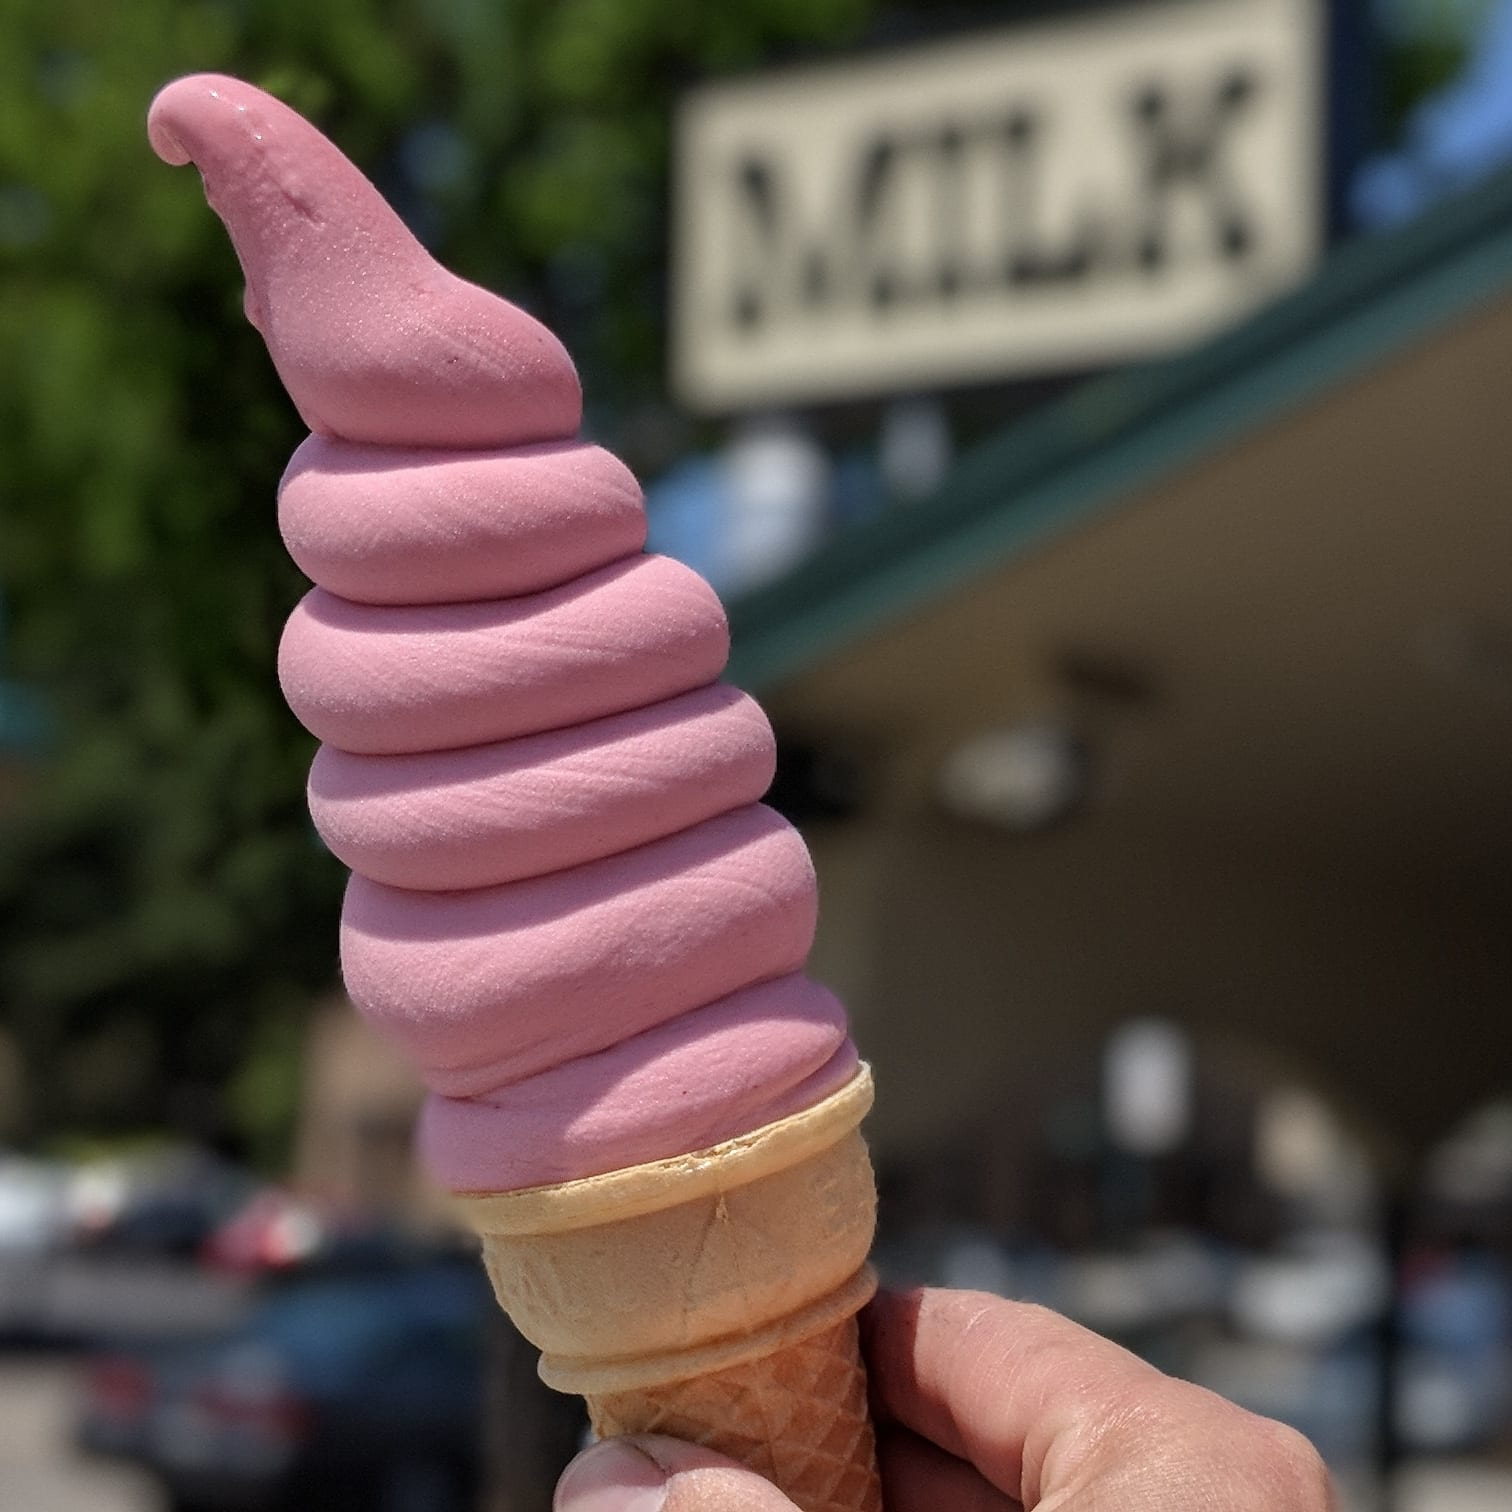 Strawberry Soft Serve Ice Cream from Meadowlark Dairy